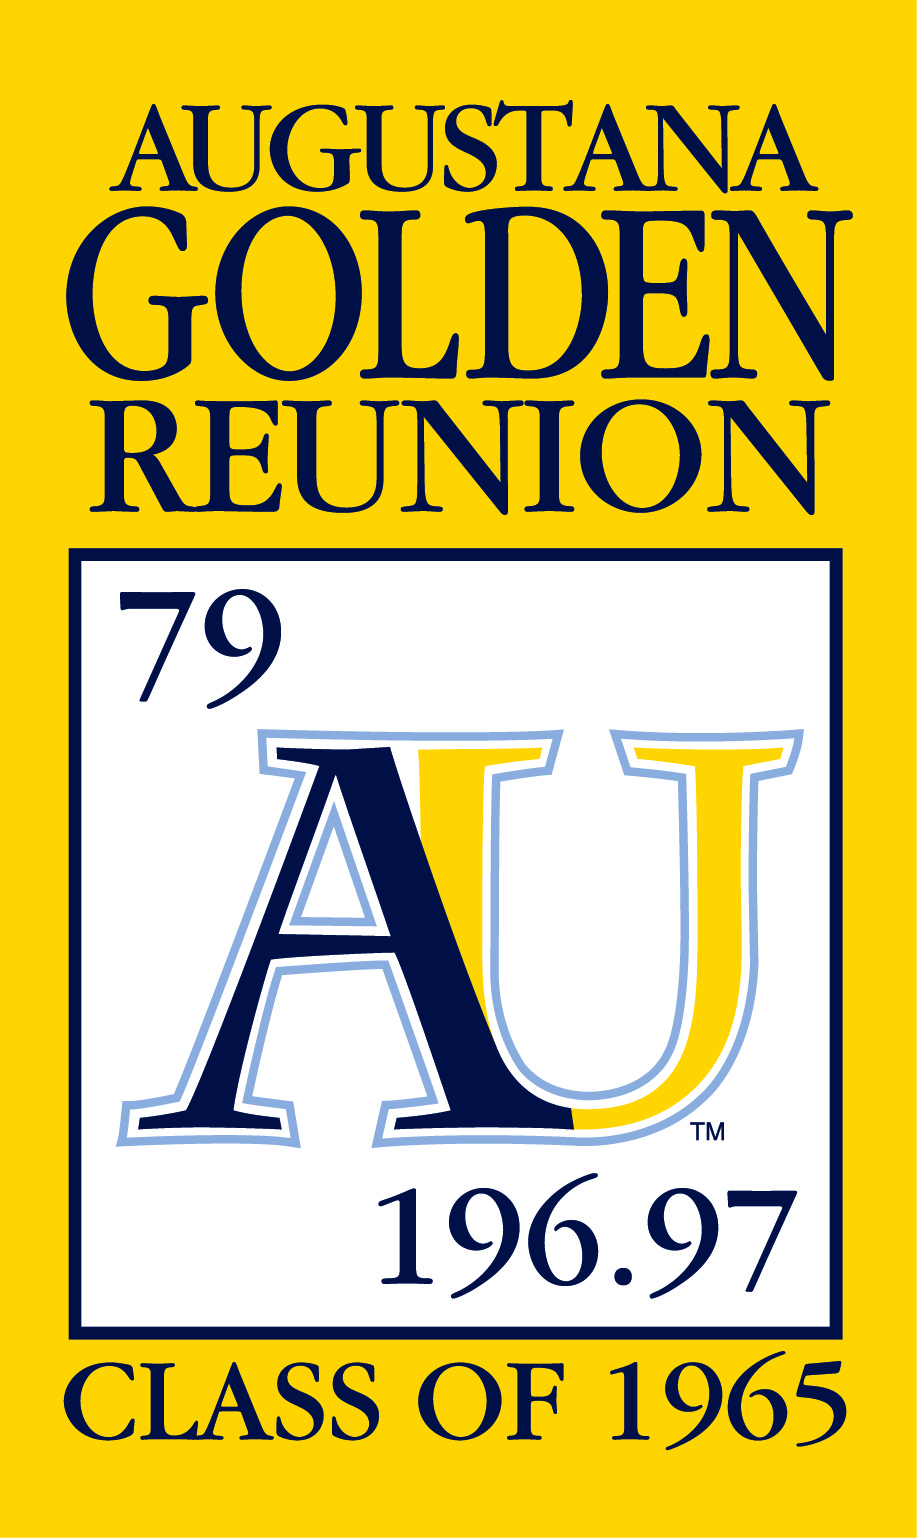 Augustana 50th Reunion - WEBSTORE CLOSED